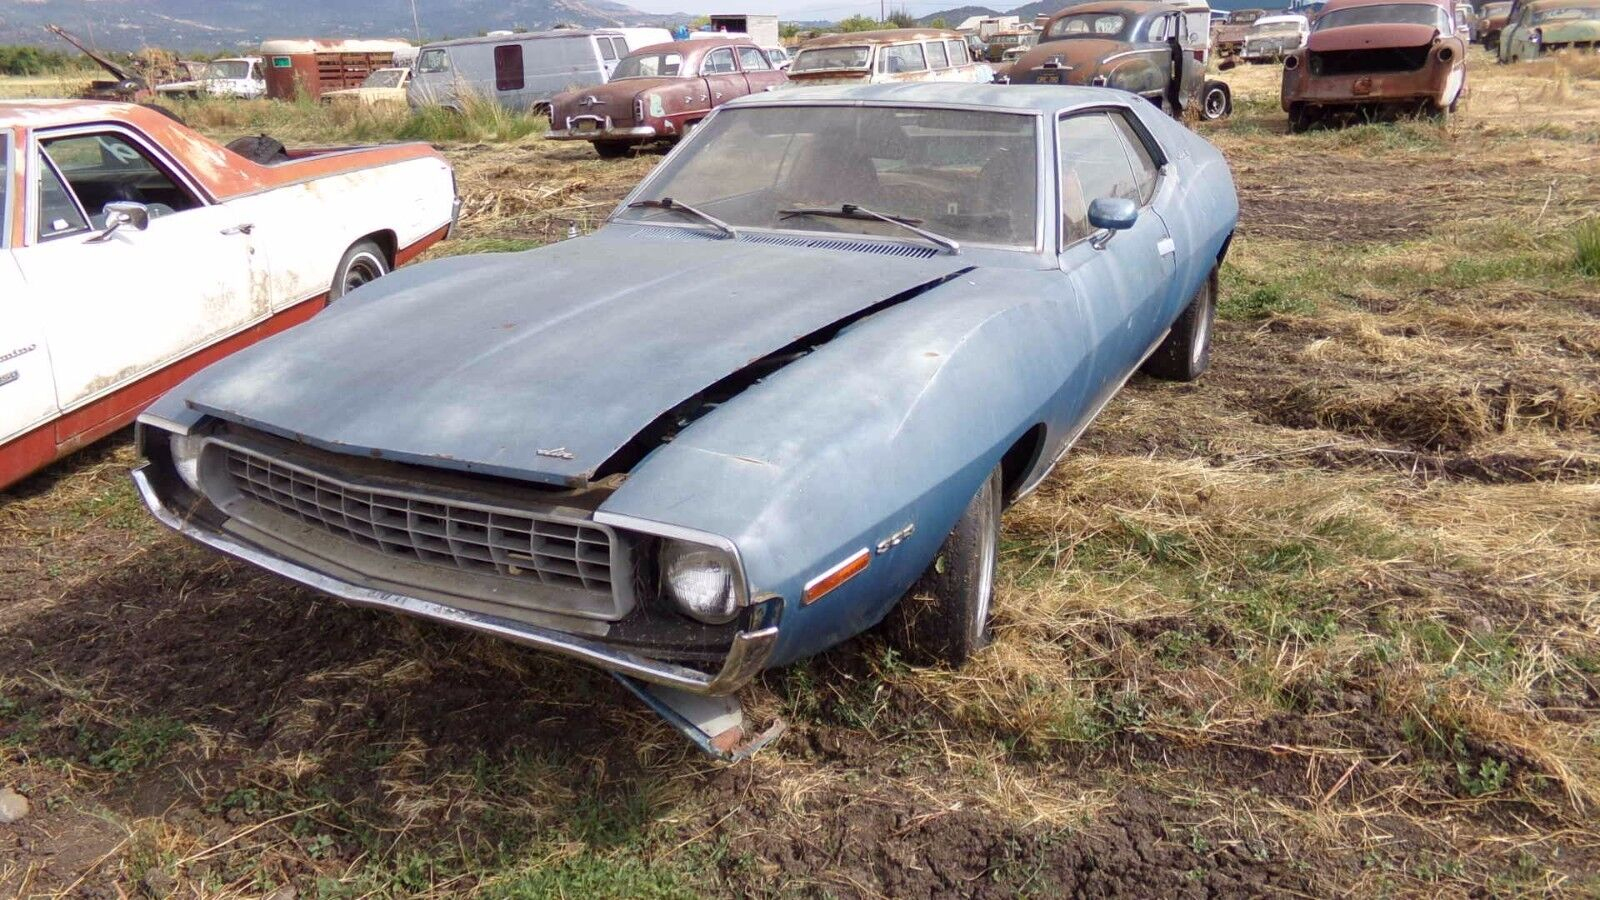 1972 AMC Javelin SST BUCKETS CONSOLE 304 **NO RESERVE*** 1972 AMC JAVELIN SST ***NO RESERVE*****